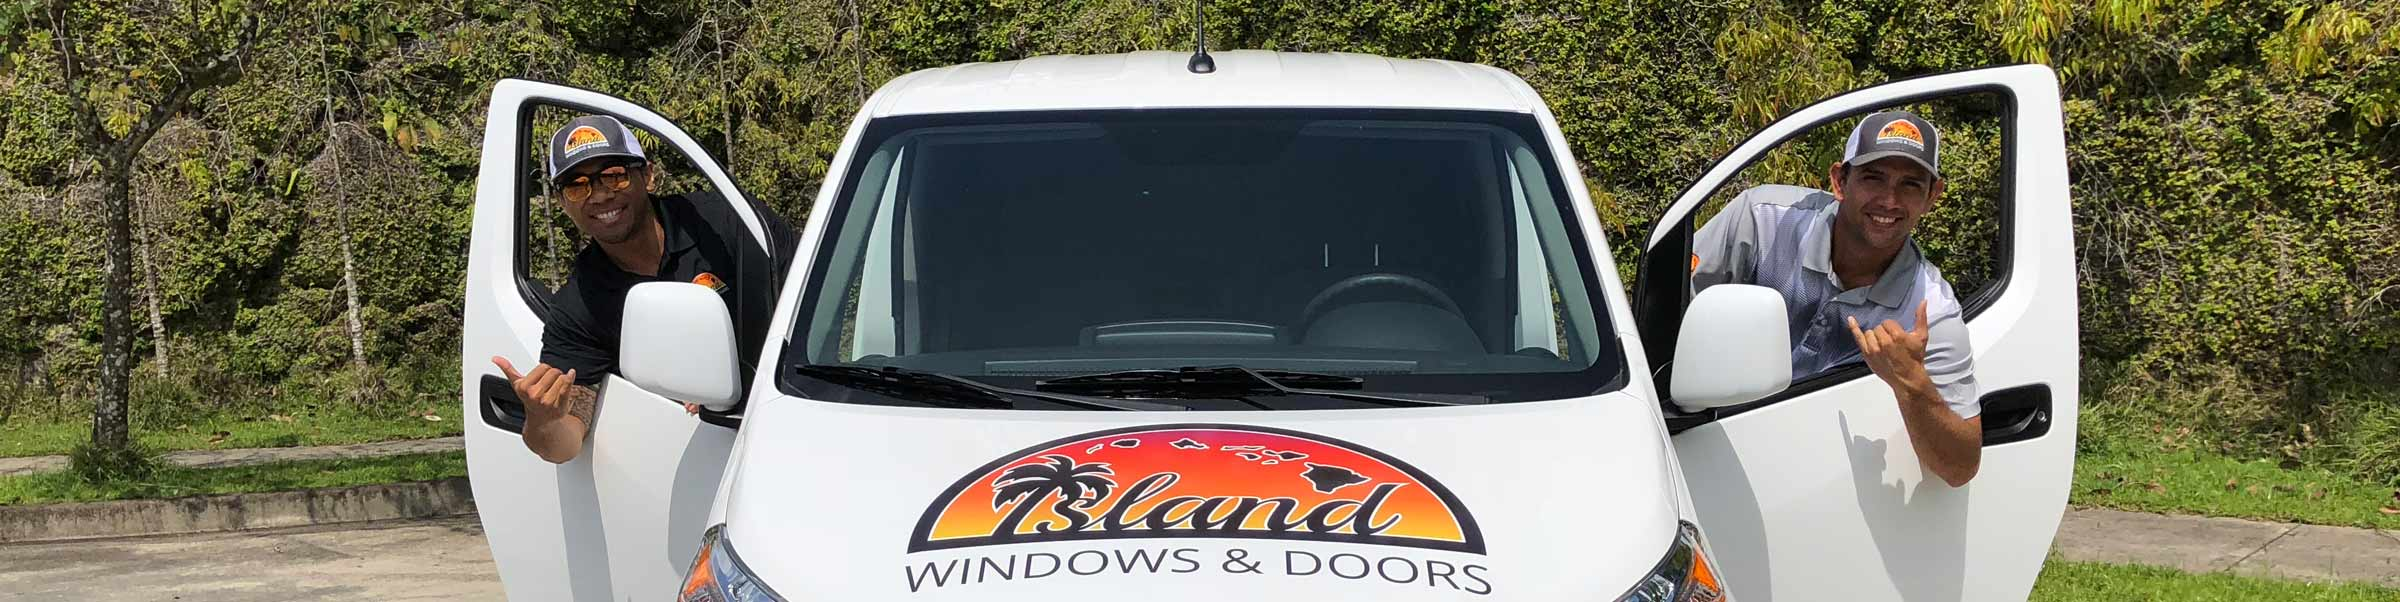 Island windows and doors team